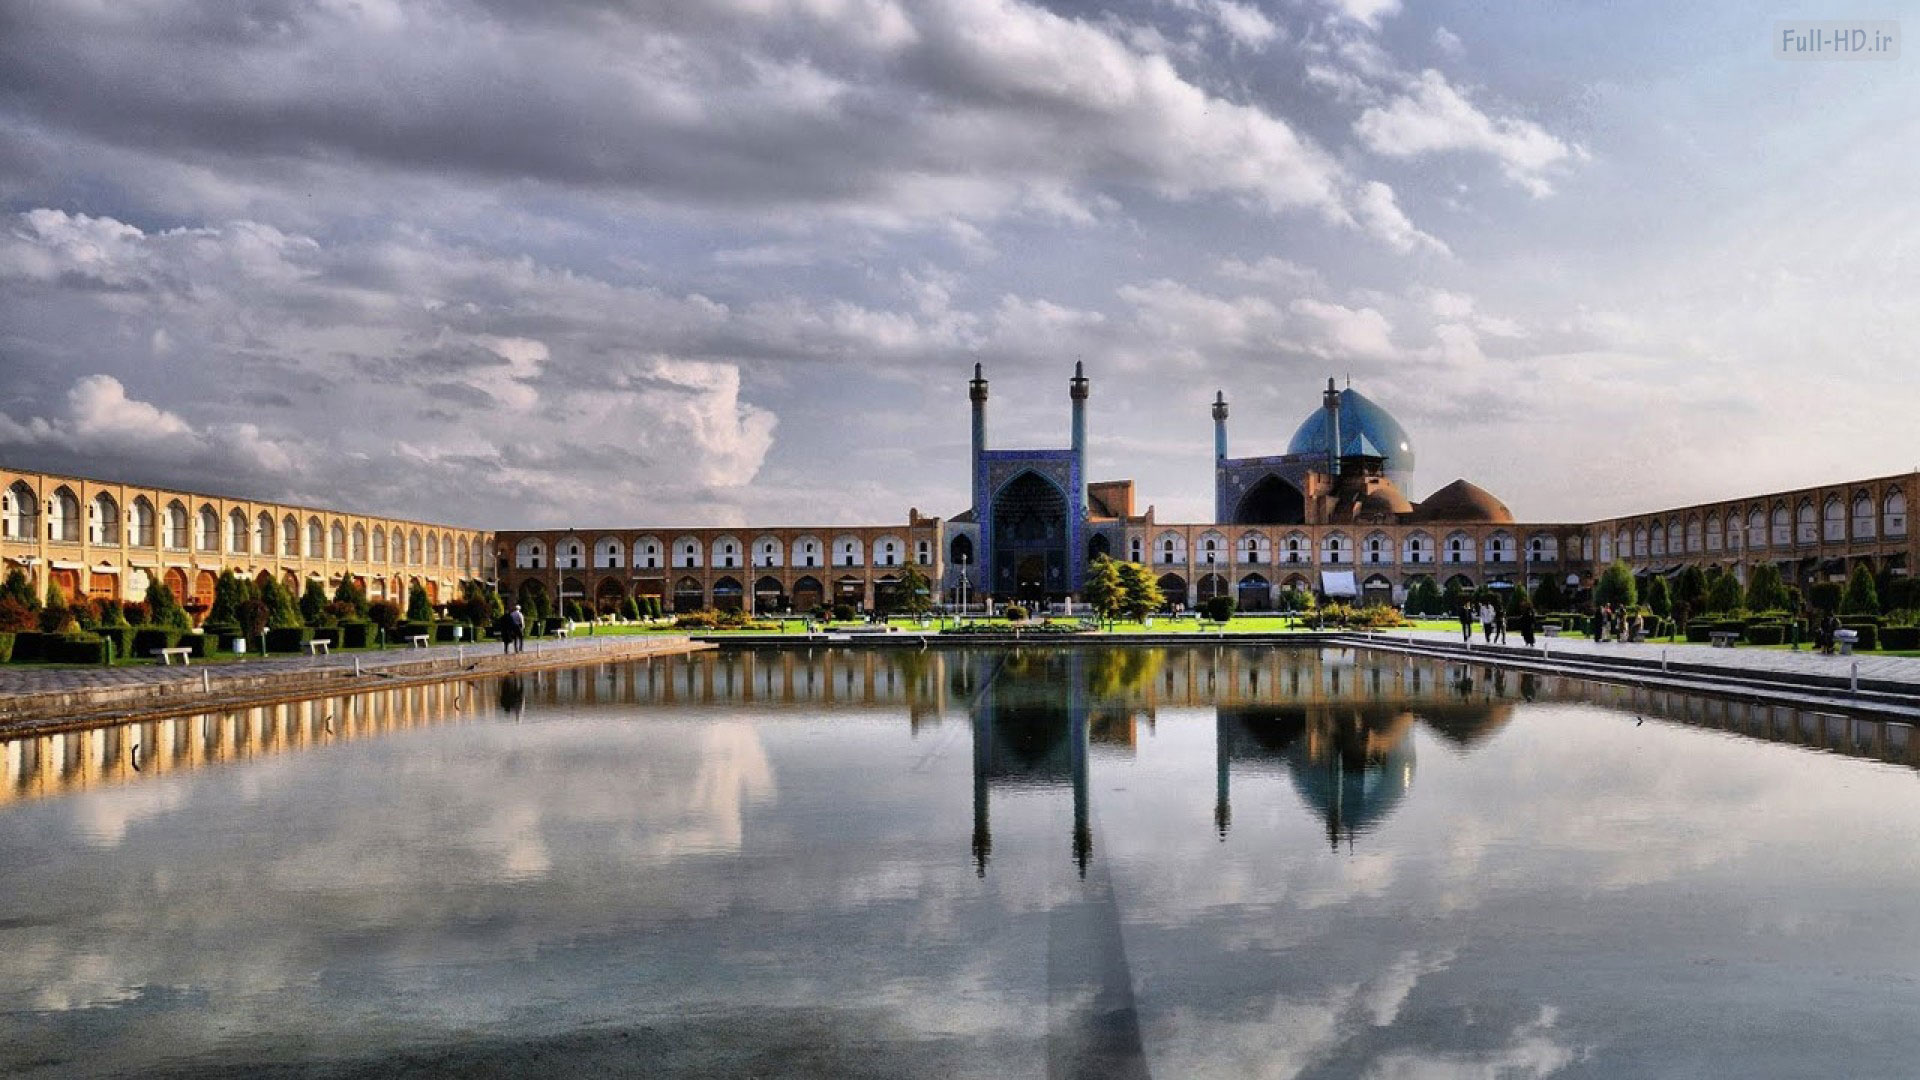 imam-square-isfahan